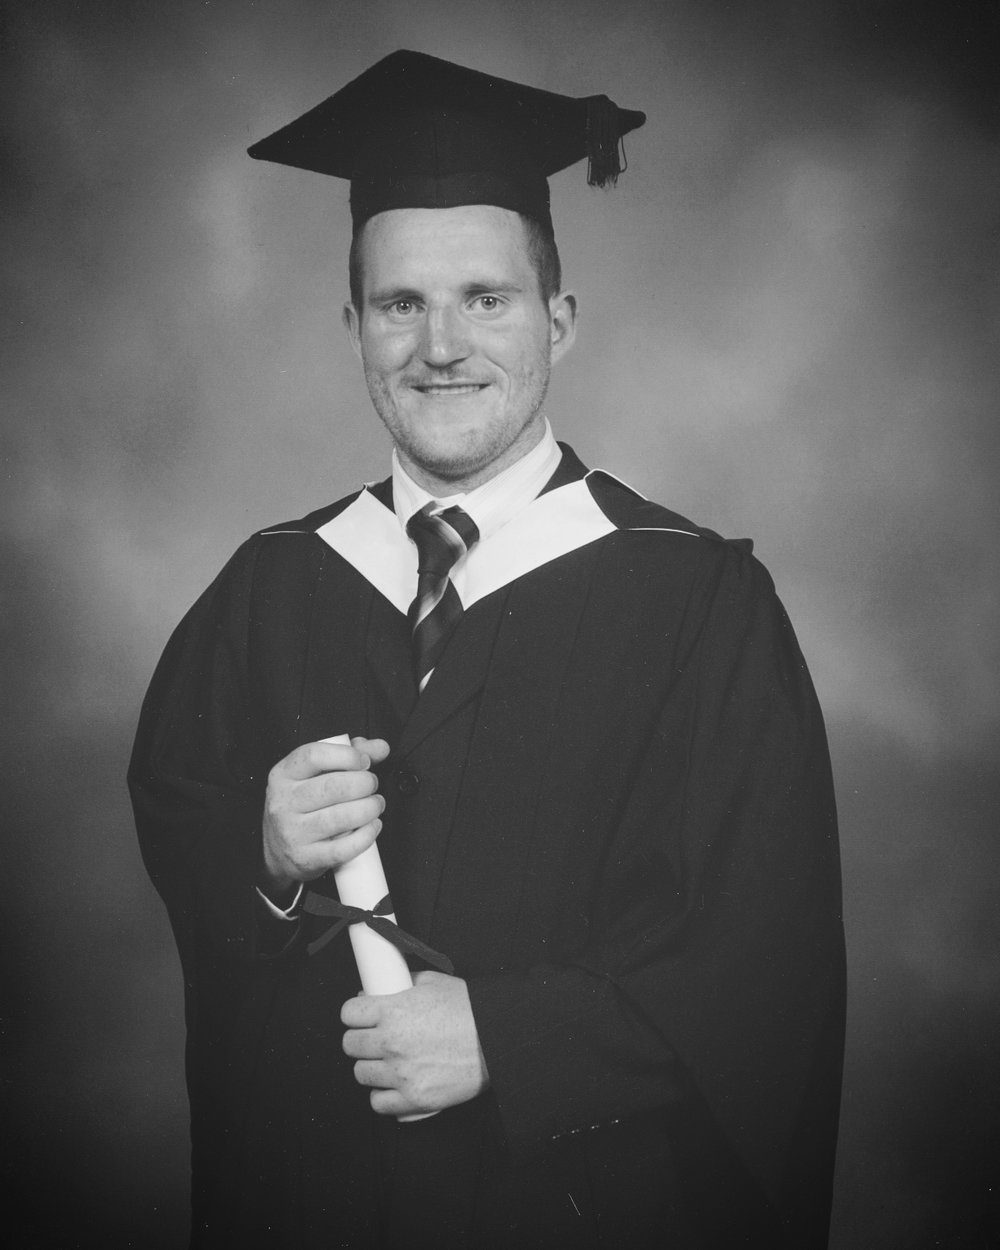 2009-Conor Graduates as Architectural Technician